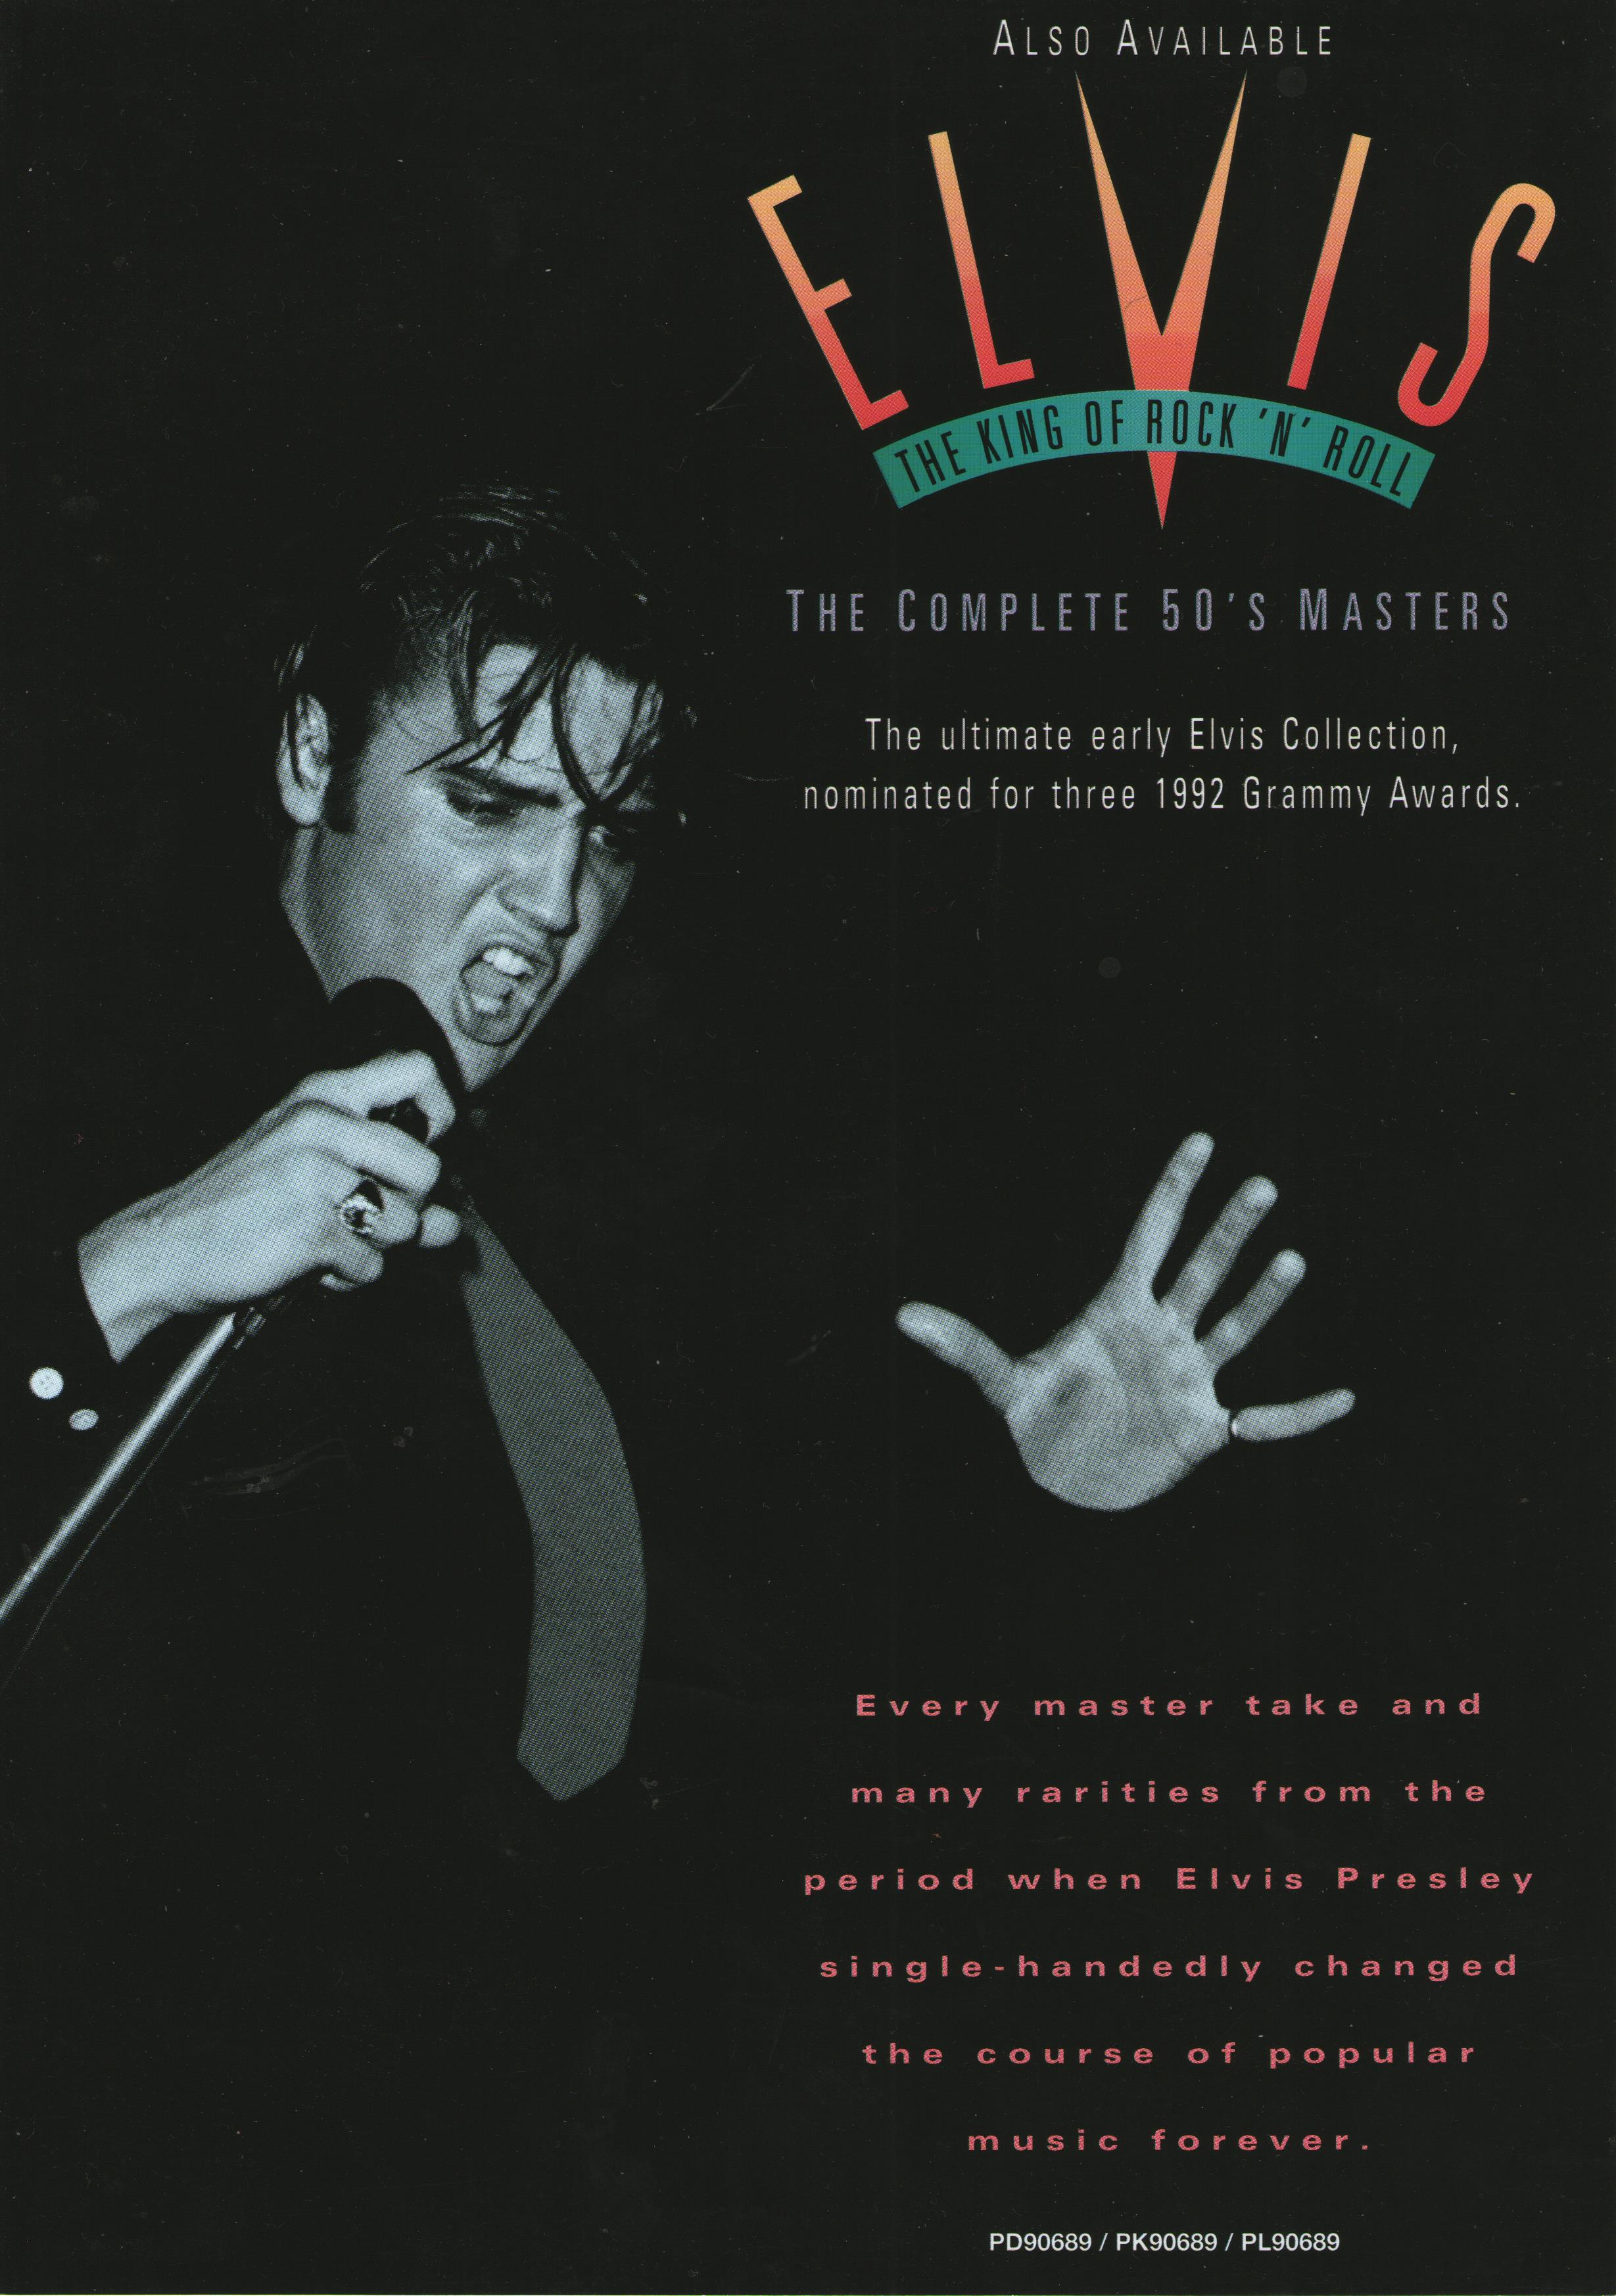 ELVIS - FROM NASHVILLE TO MEMPHIS - THE ESSENTIAL 60'S MASTERS Img2m9qi4